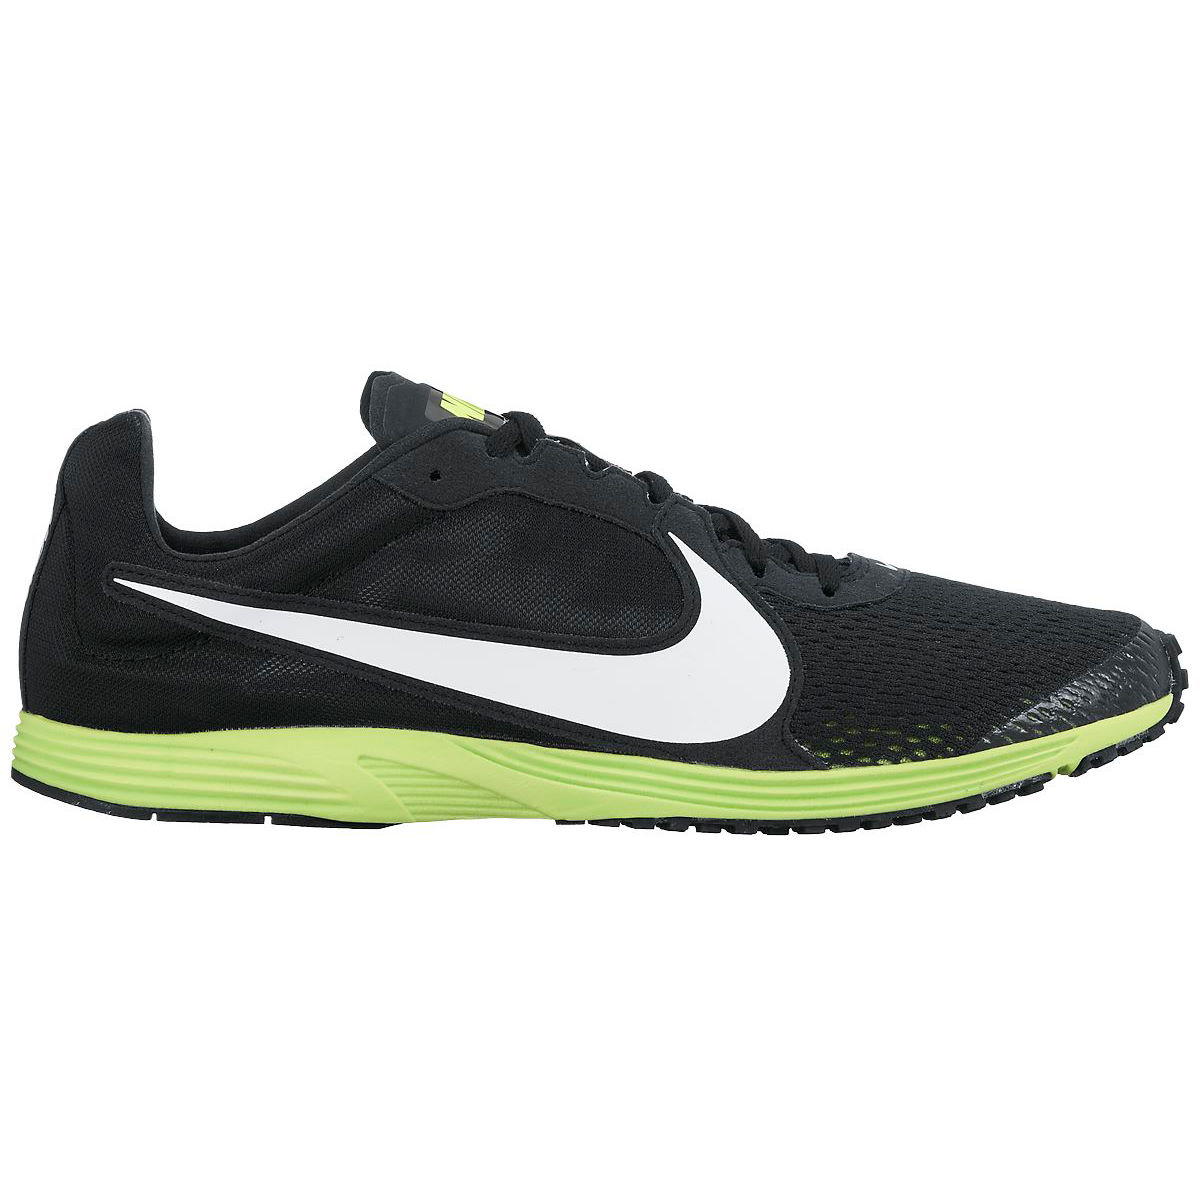 Wiggle | Nike Zoom Streak Lt 2 Shoes (FA15) | Racing Running Shoes